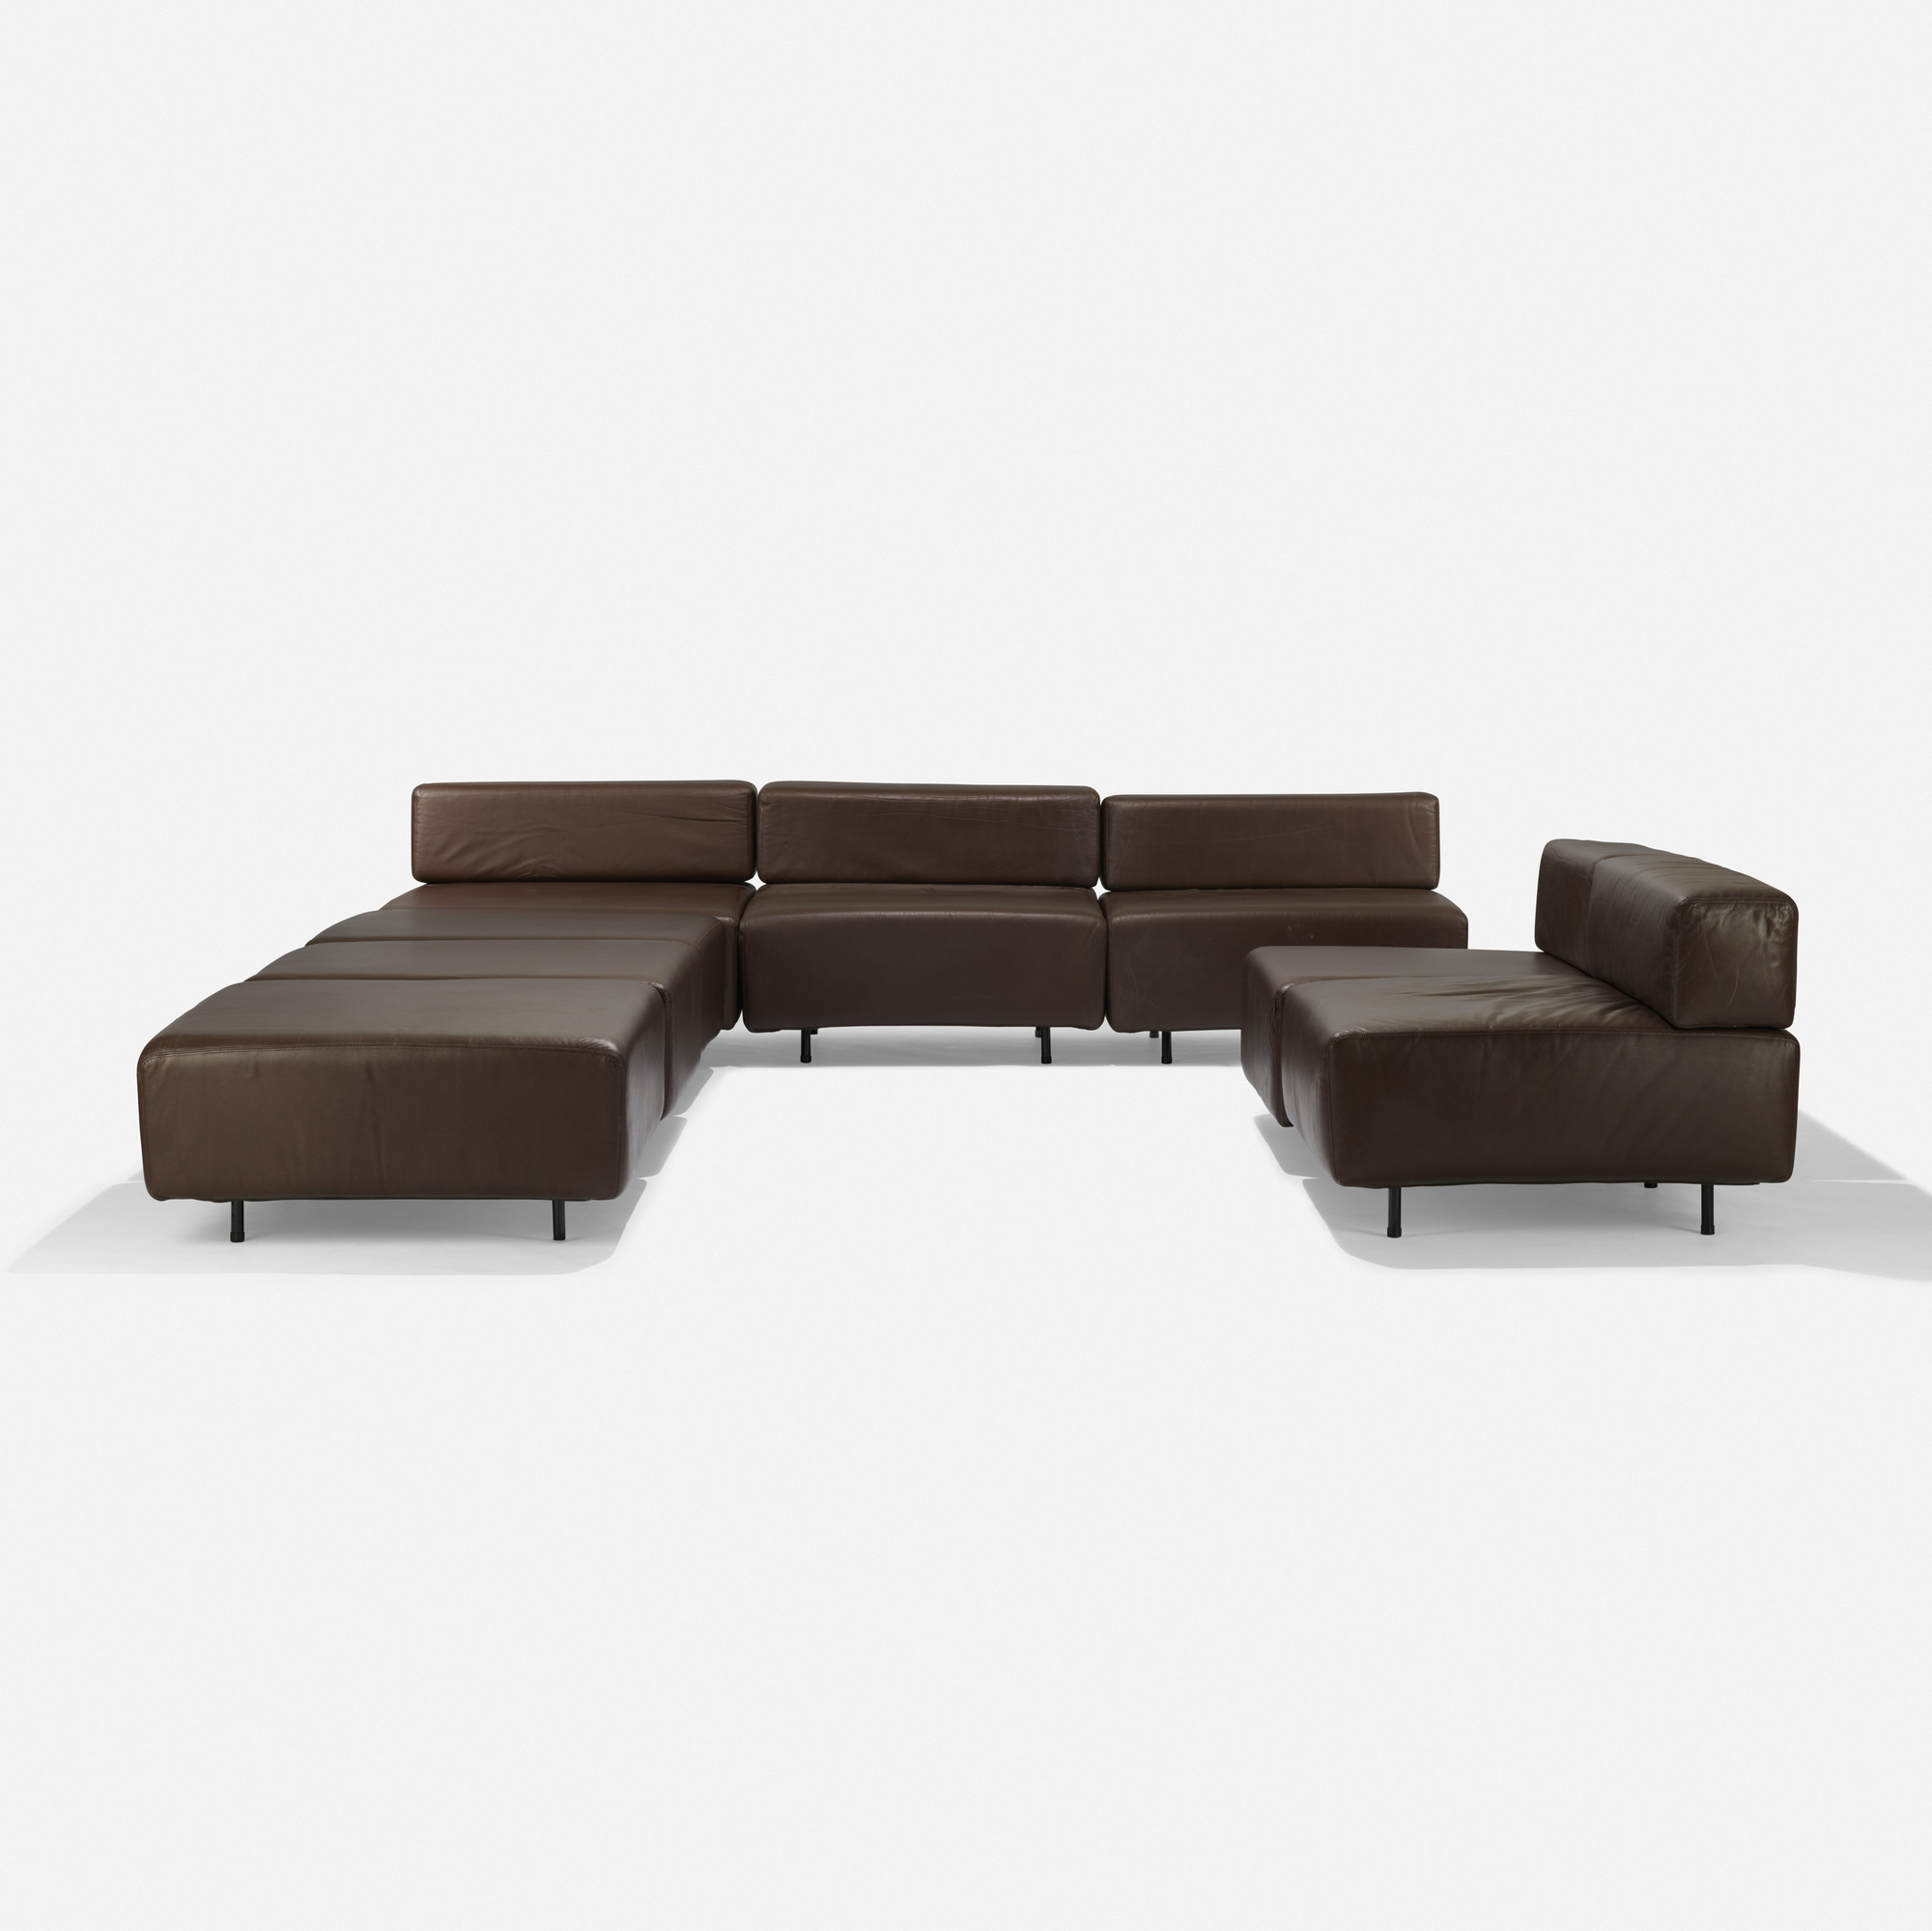 196: Harvey Probber / Cubo sectional (1 of 3)